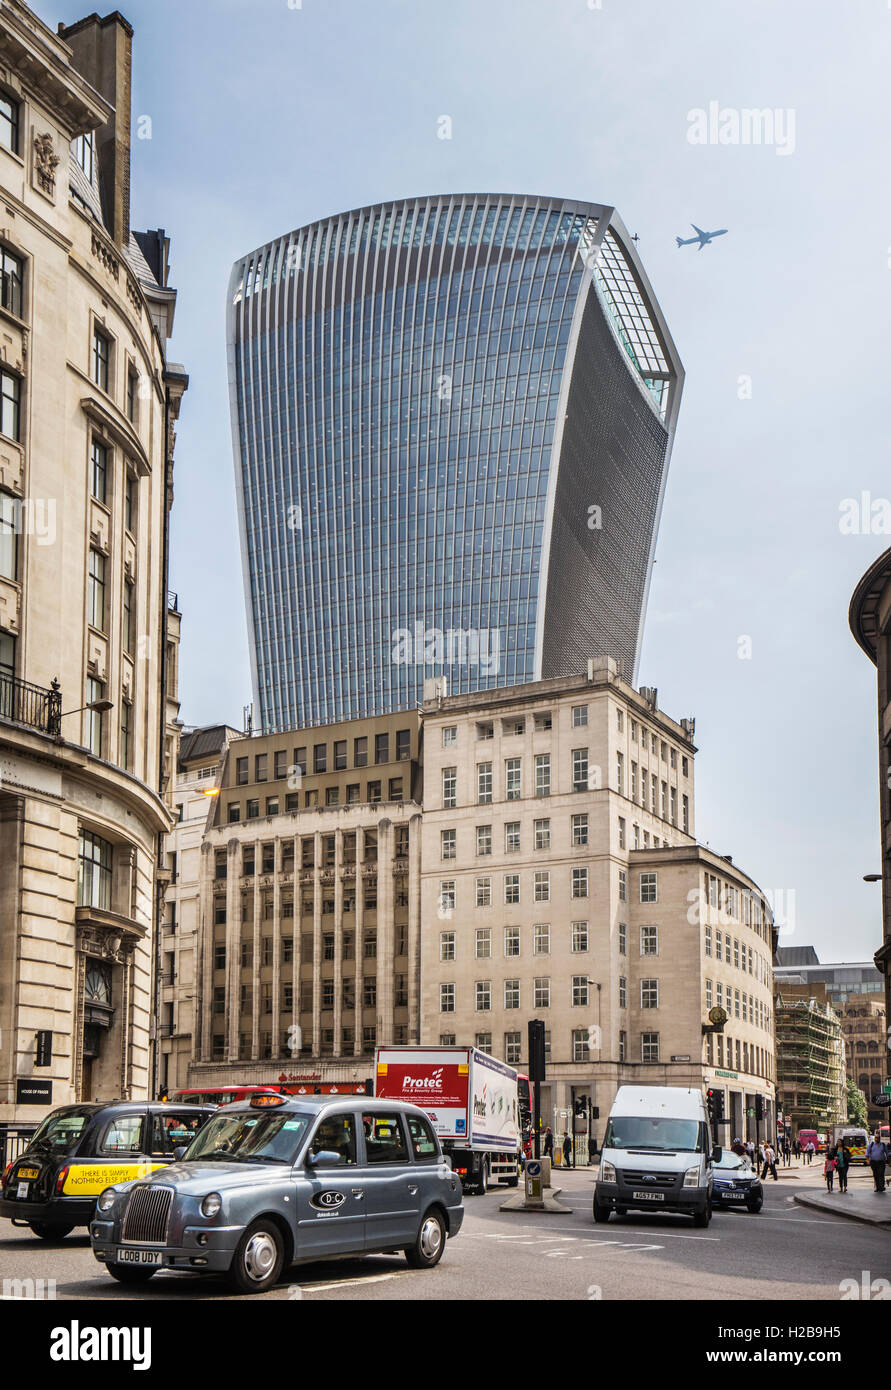 view of the controversial 20 Fenchurch Street building, nicknamed 'The Walkie-Talkie' - Stock Image